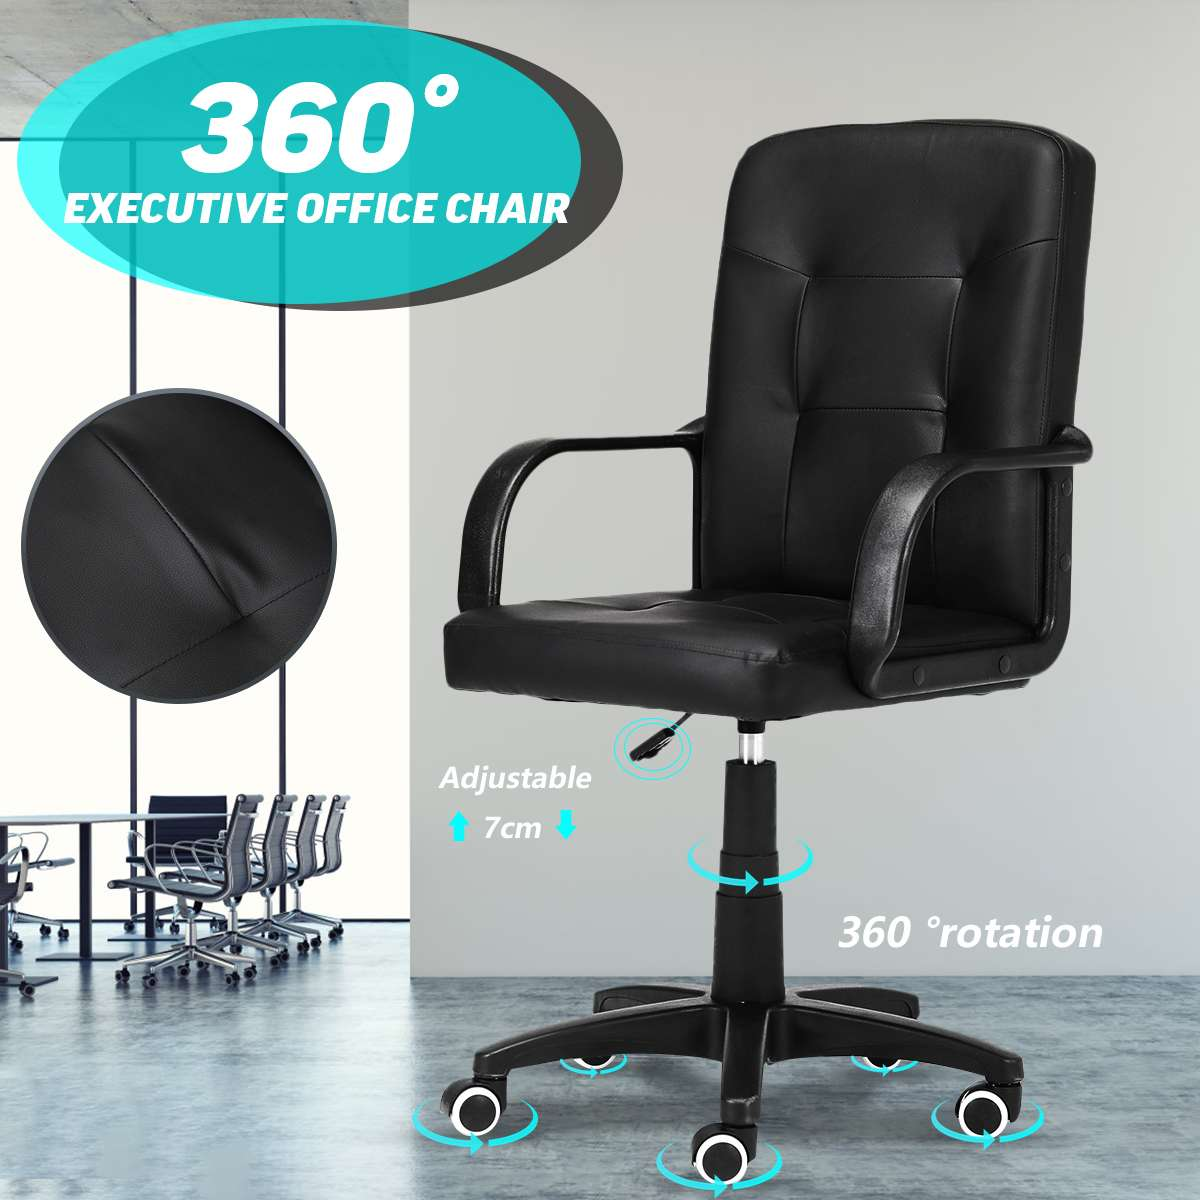 He2358d103c1c45a2bb1e4f53b2880d94g - WCG Gaming Chair Computer Armchair Office Chairs Home Swivel Massage Chair Lifting Adjustable Desk Chair Lying Recliner Chair